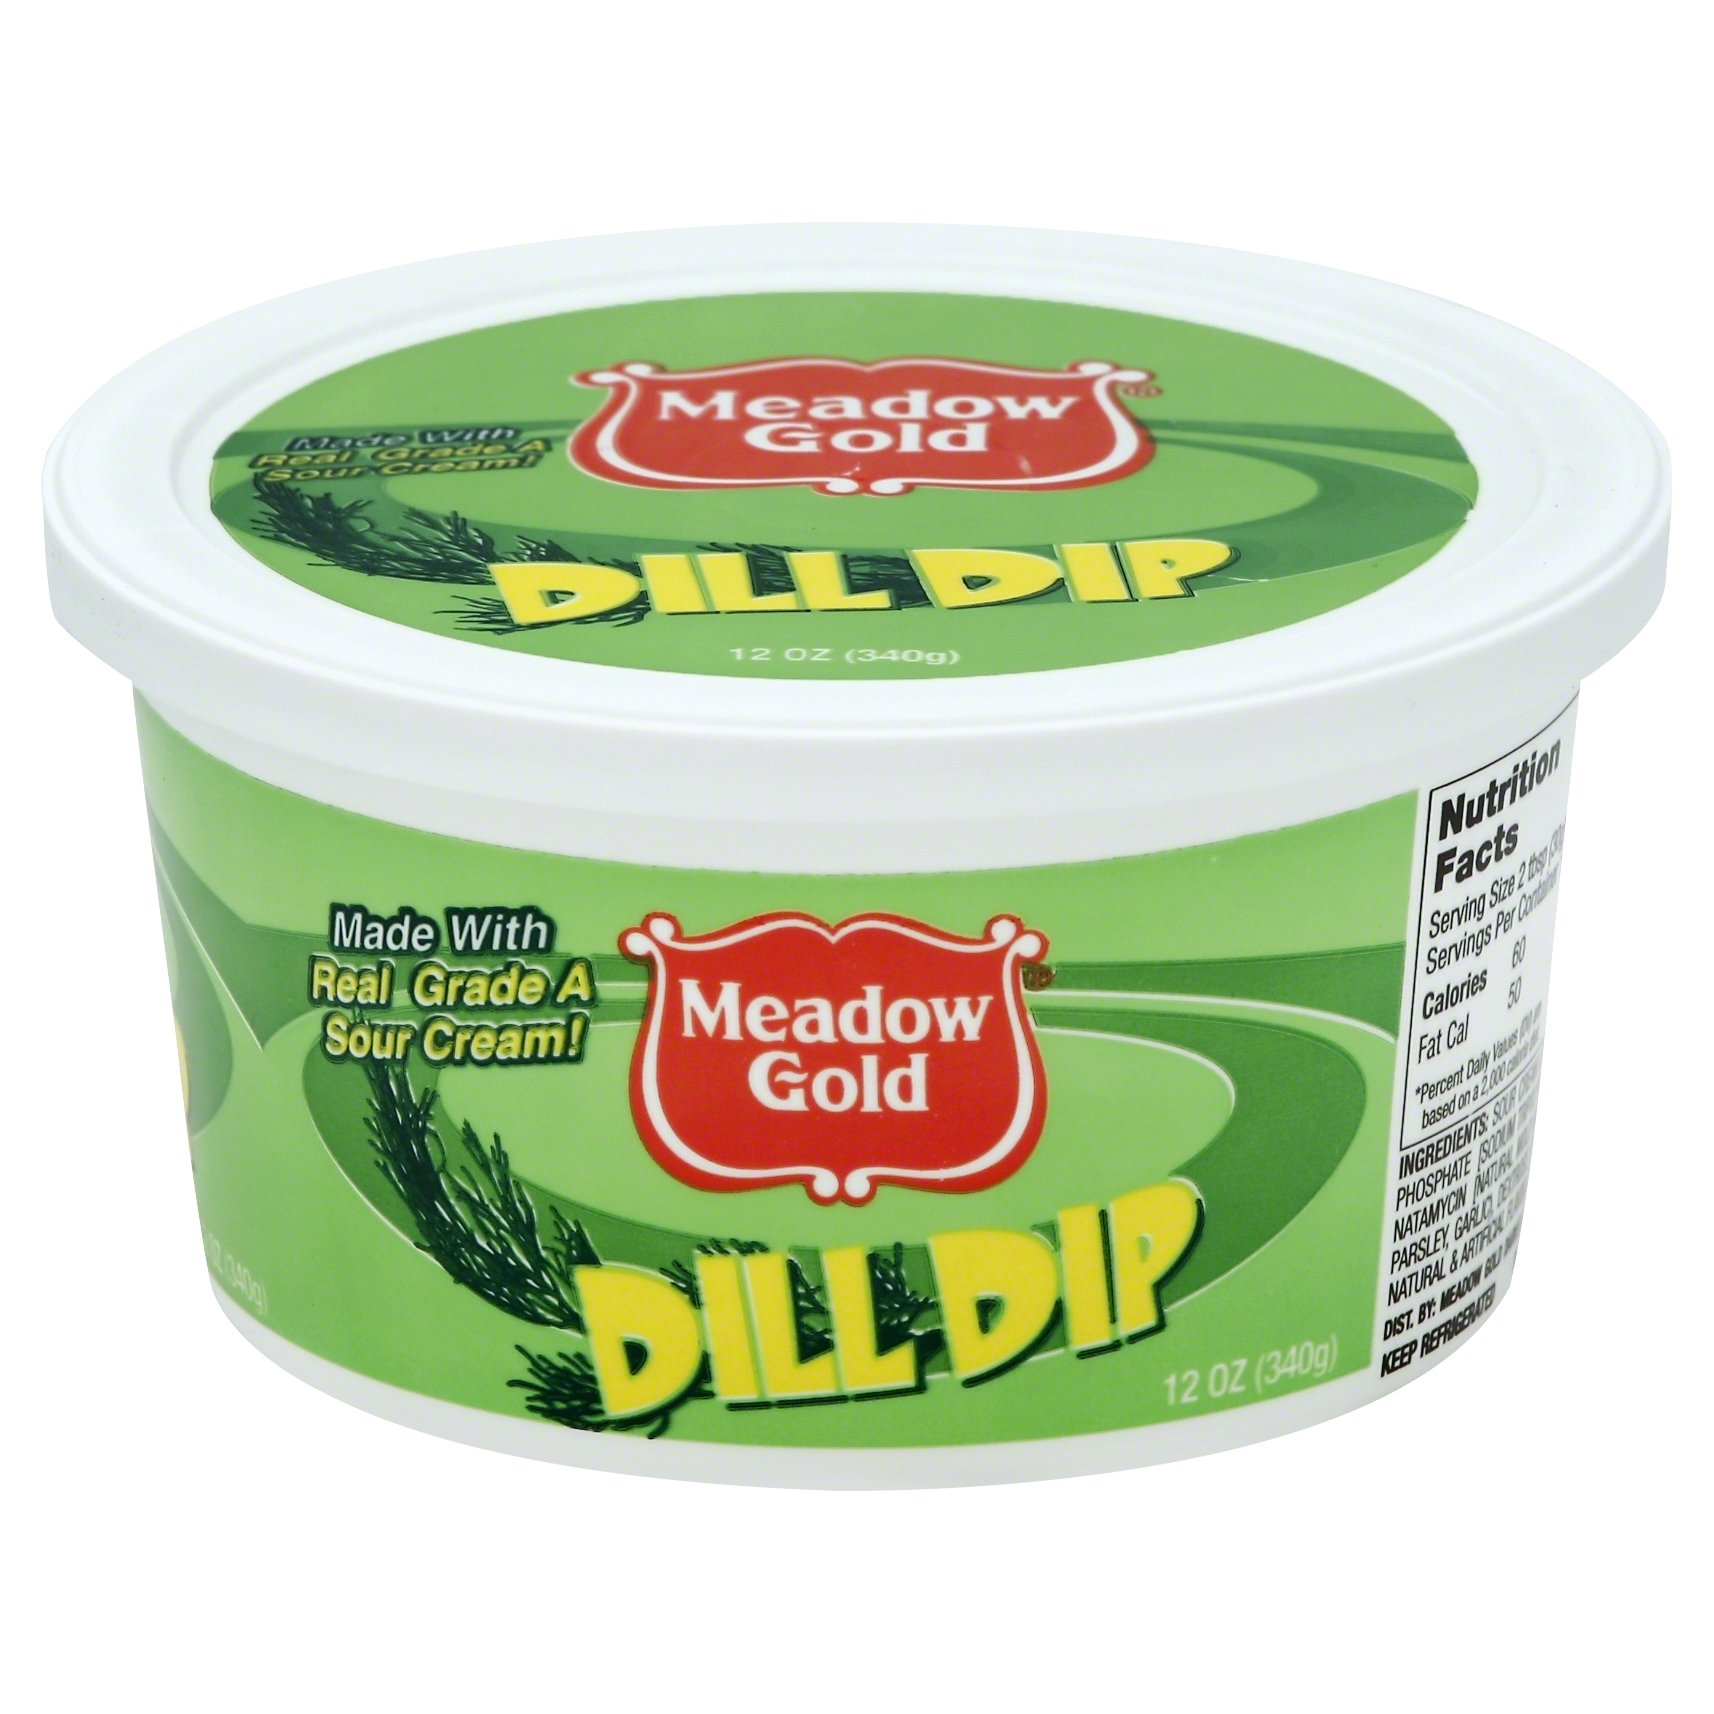 Meadow Gold Dill Dip, 12 oz